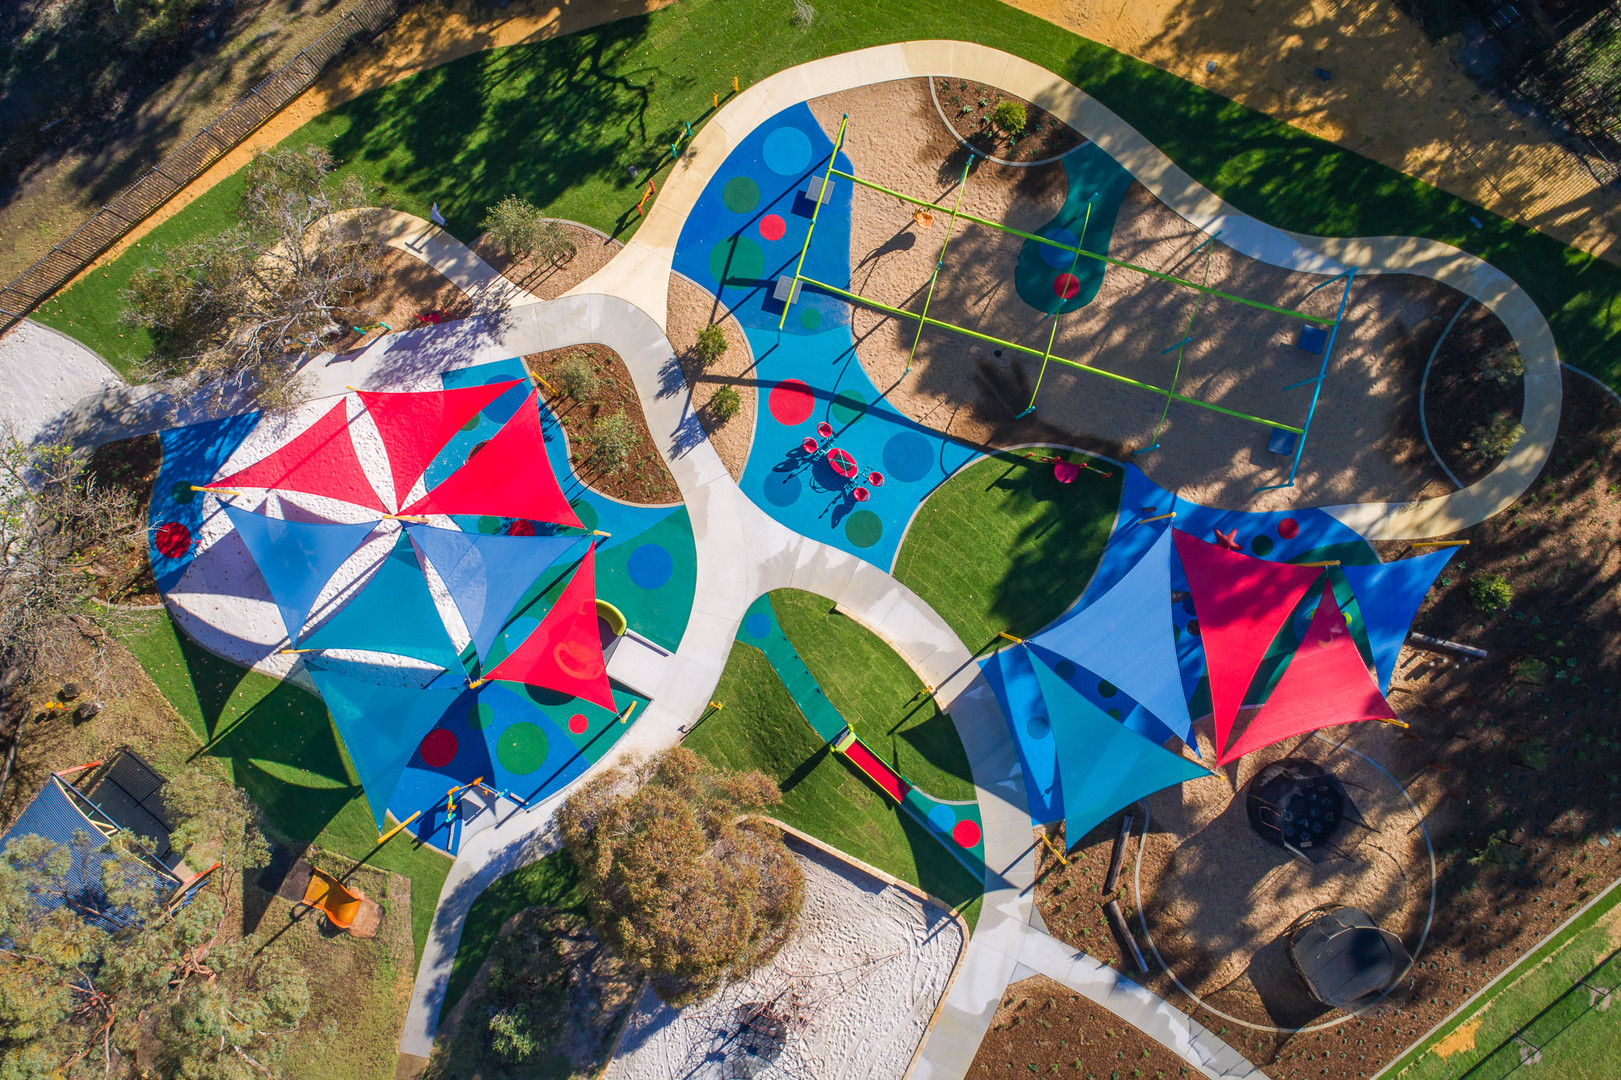 Kenwick School overhead image. Inclusive and Accessible playground design.